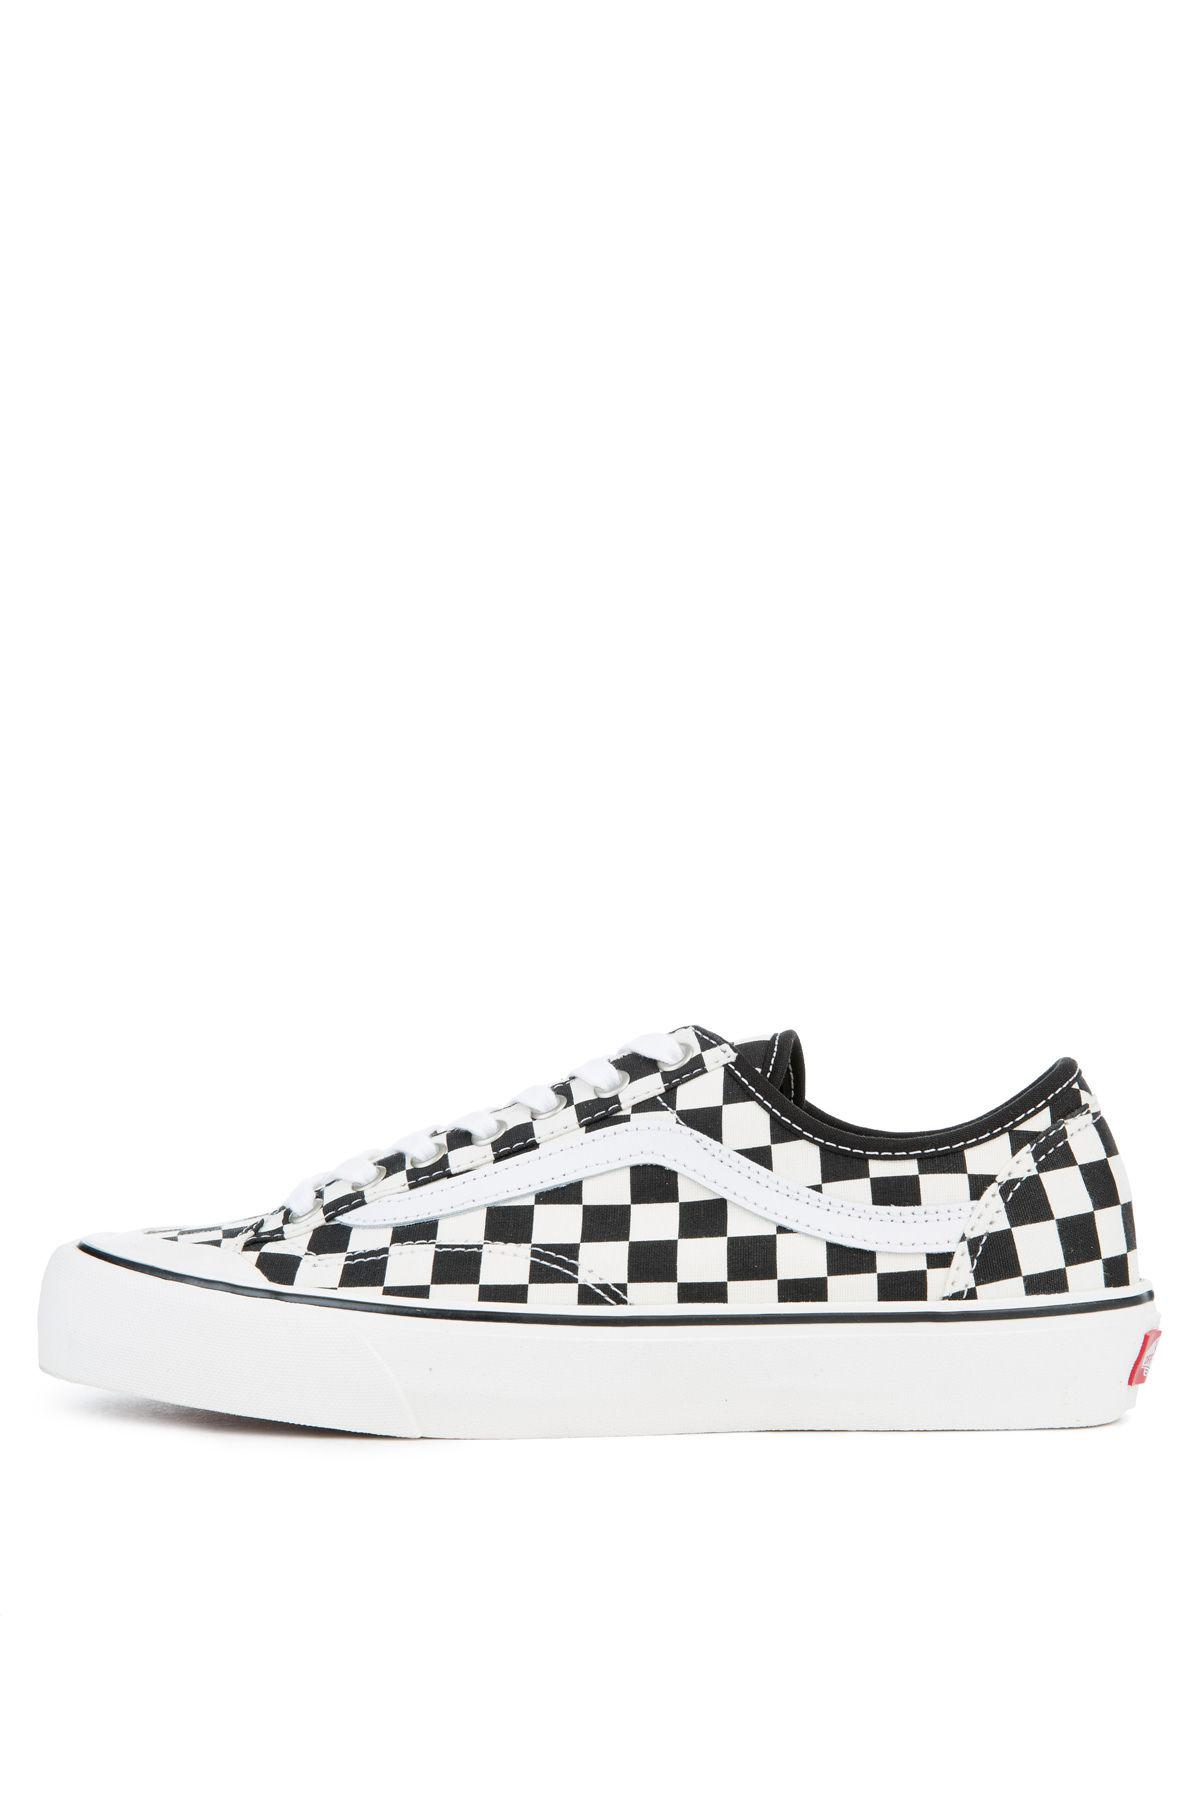 2d8c9a30b6 Lyst - Vans The Men s Style 36 Decon Sf Checkerboard In Black And ...